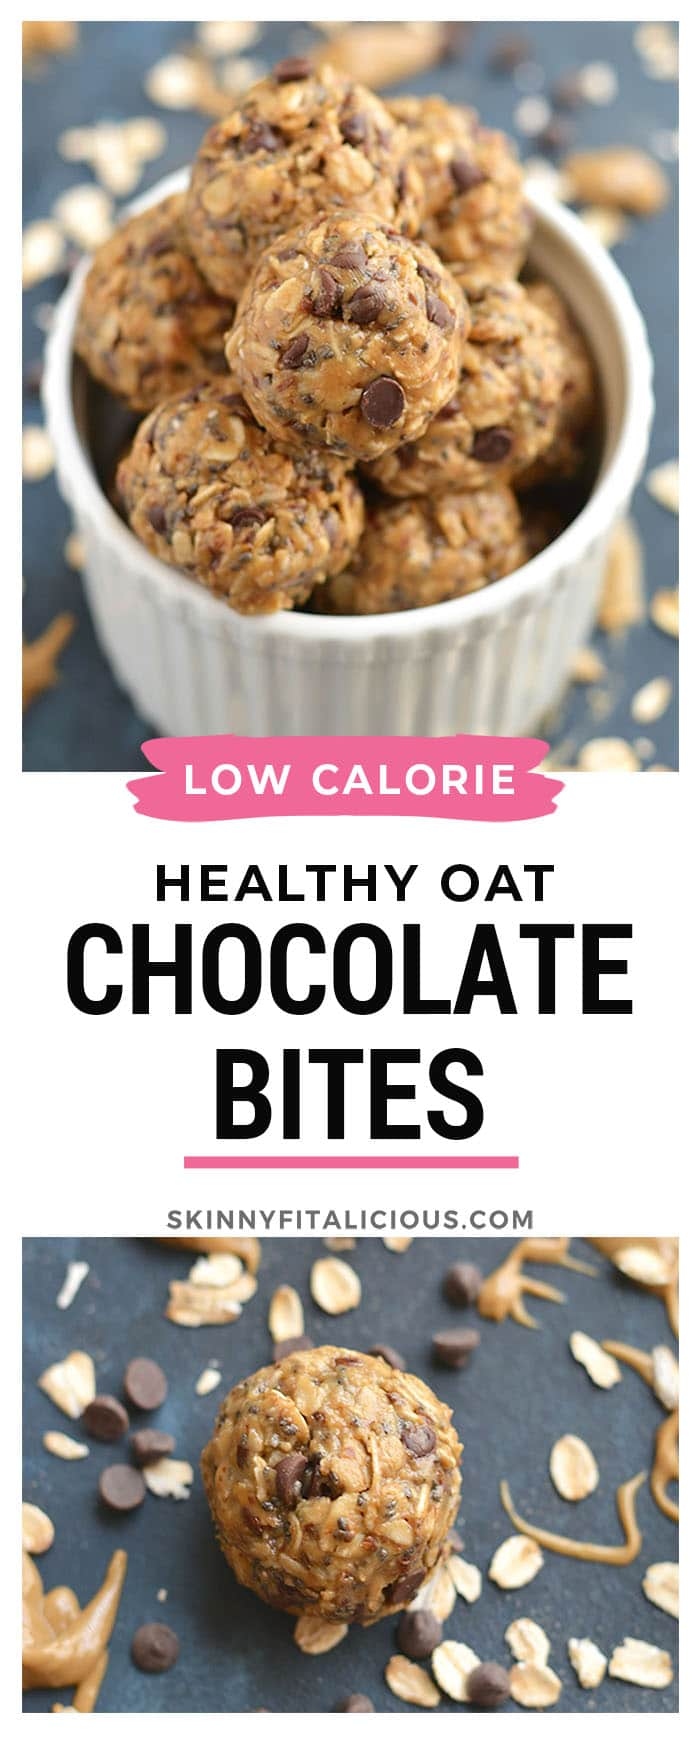 Chocolate Almond Bites made with oats, almond butter, chocolate, flax and chia seeds are a healthy no-bake snack for those with a sweet tooth. The perfect lunchbox friendly snack bite!